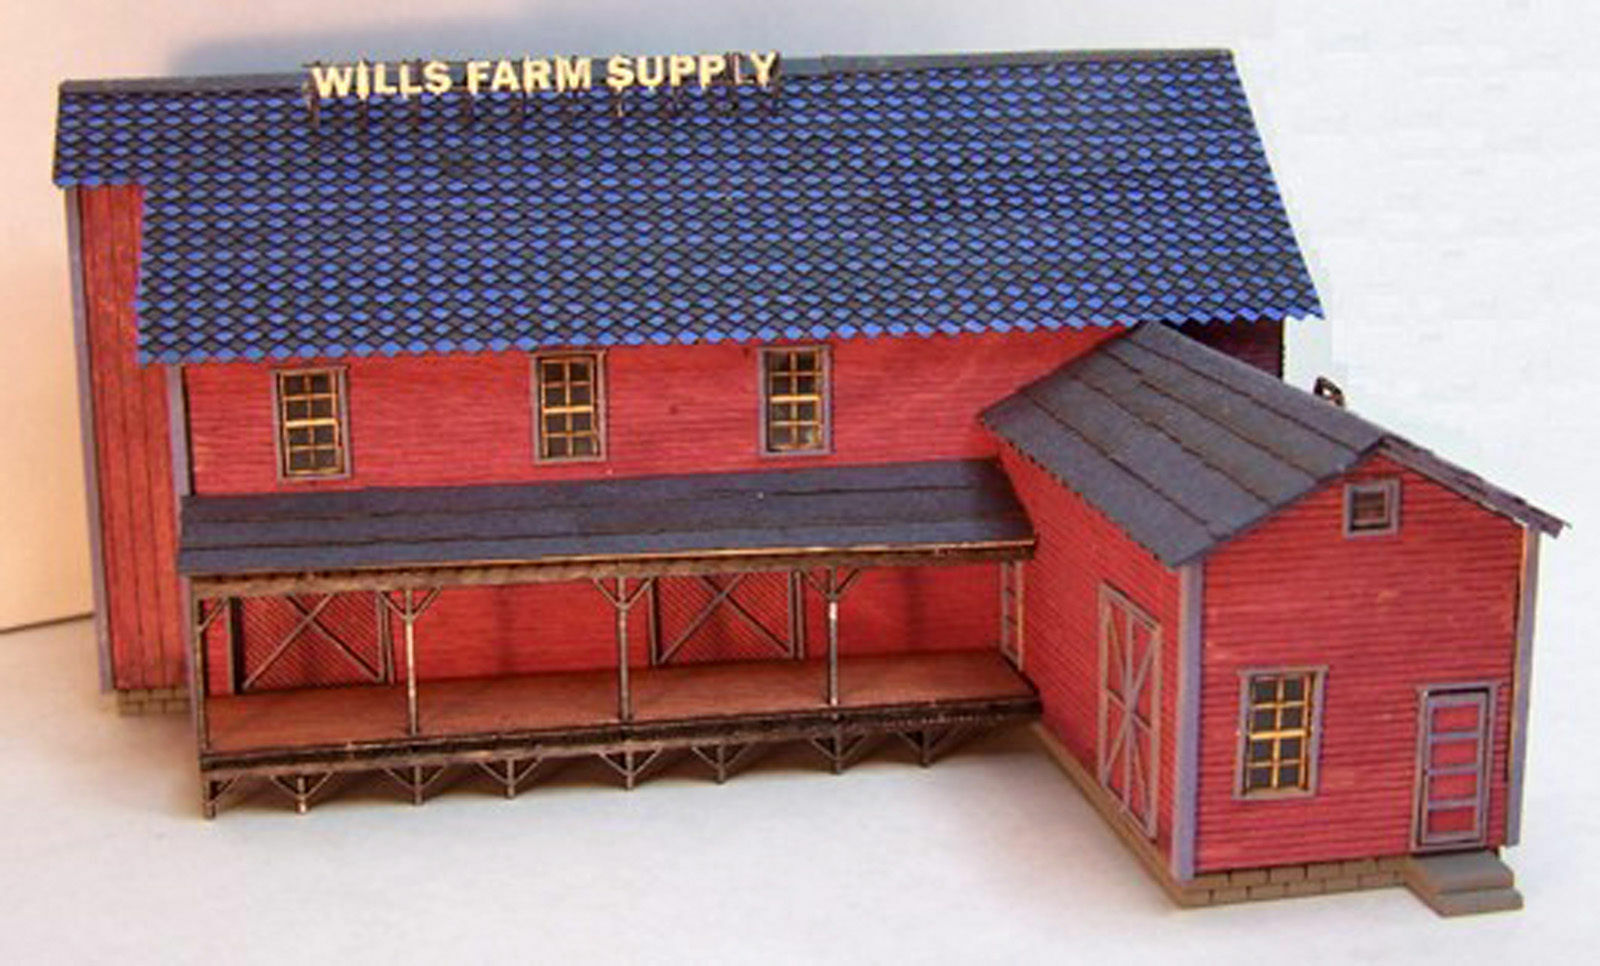 RS WILL'S FEED SEED N Scale Model Railroad Structure Wood Laser Kit FREE SHIP